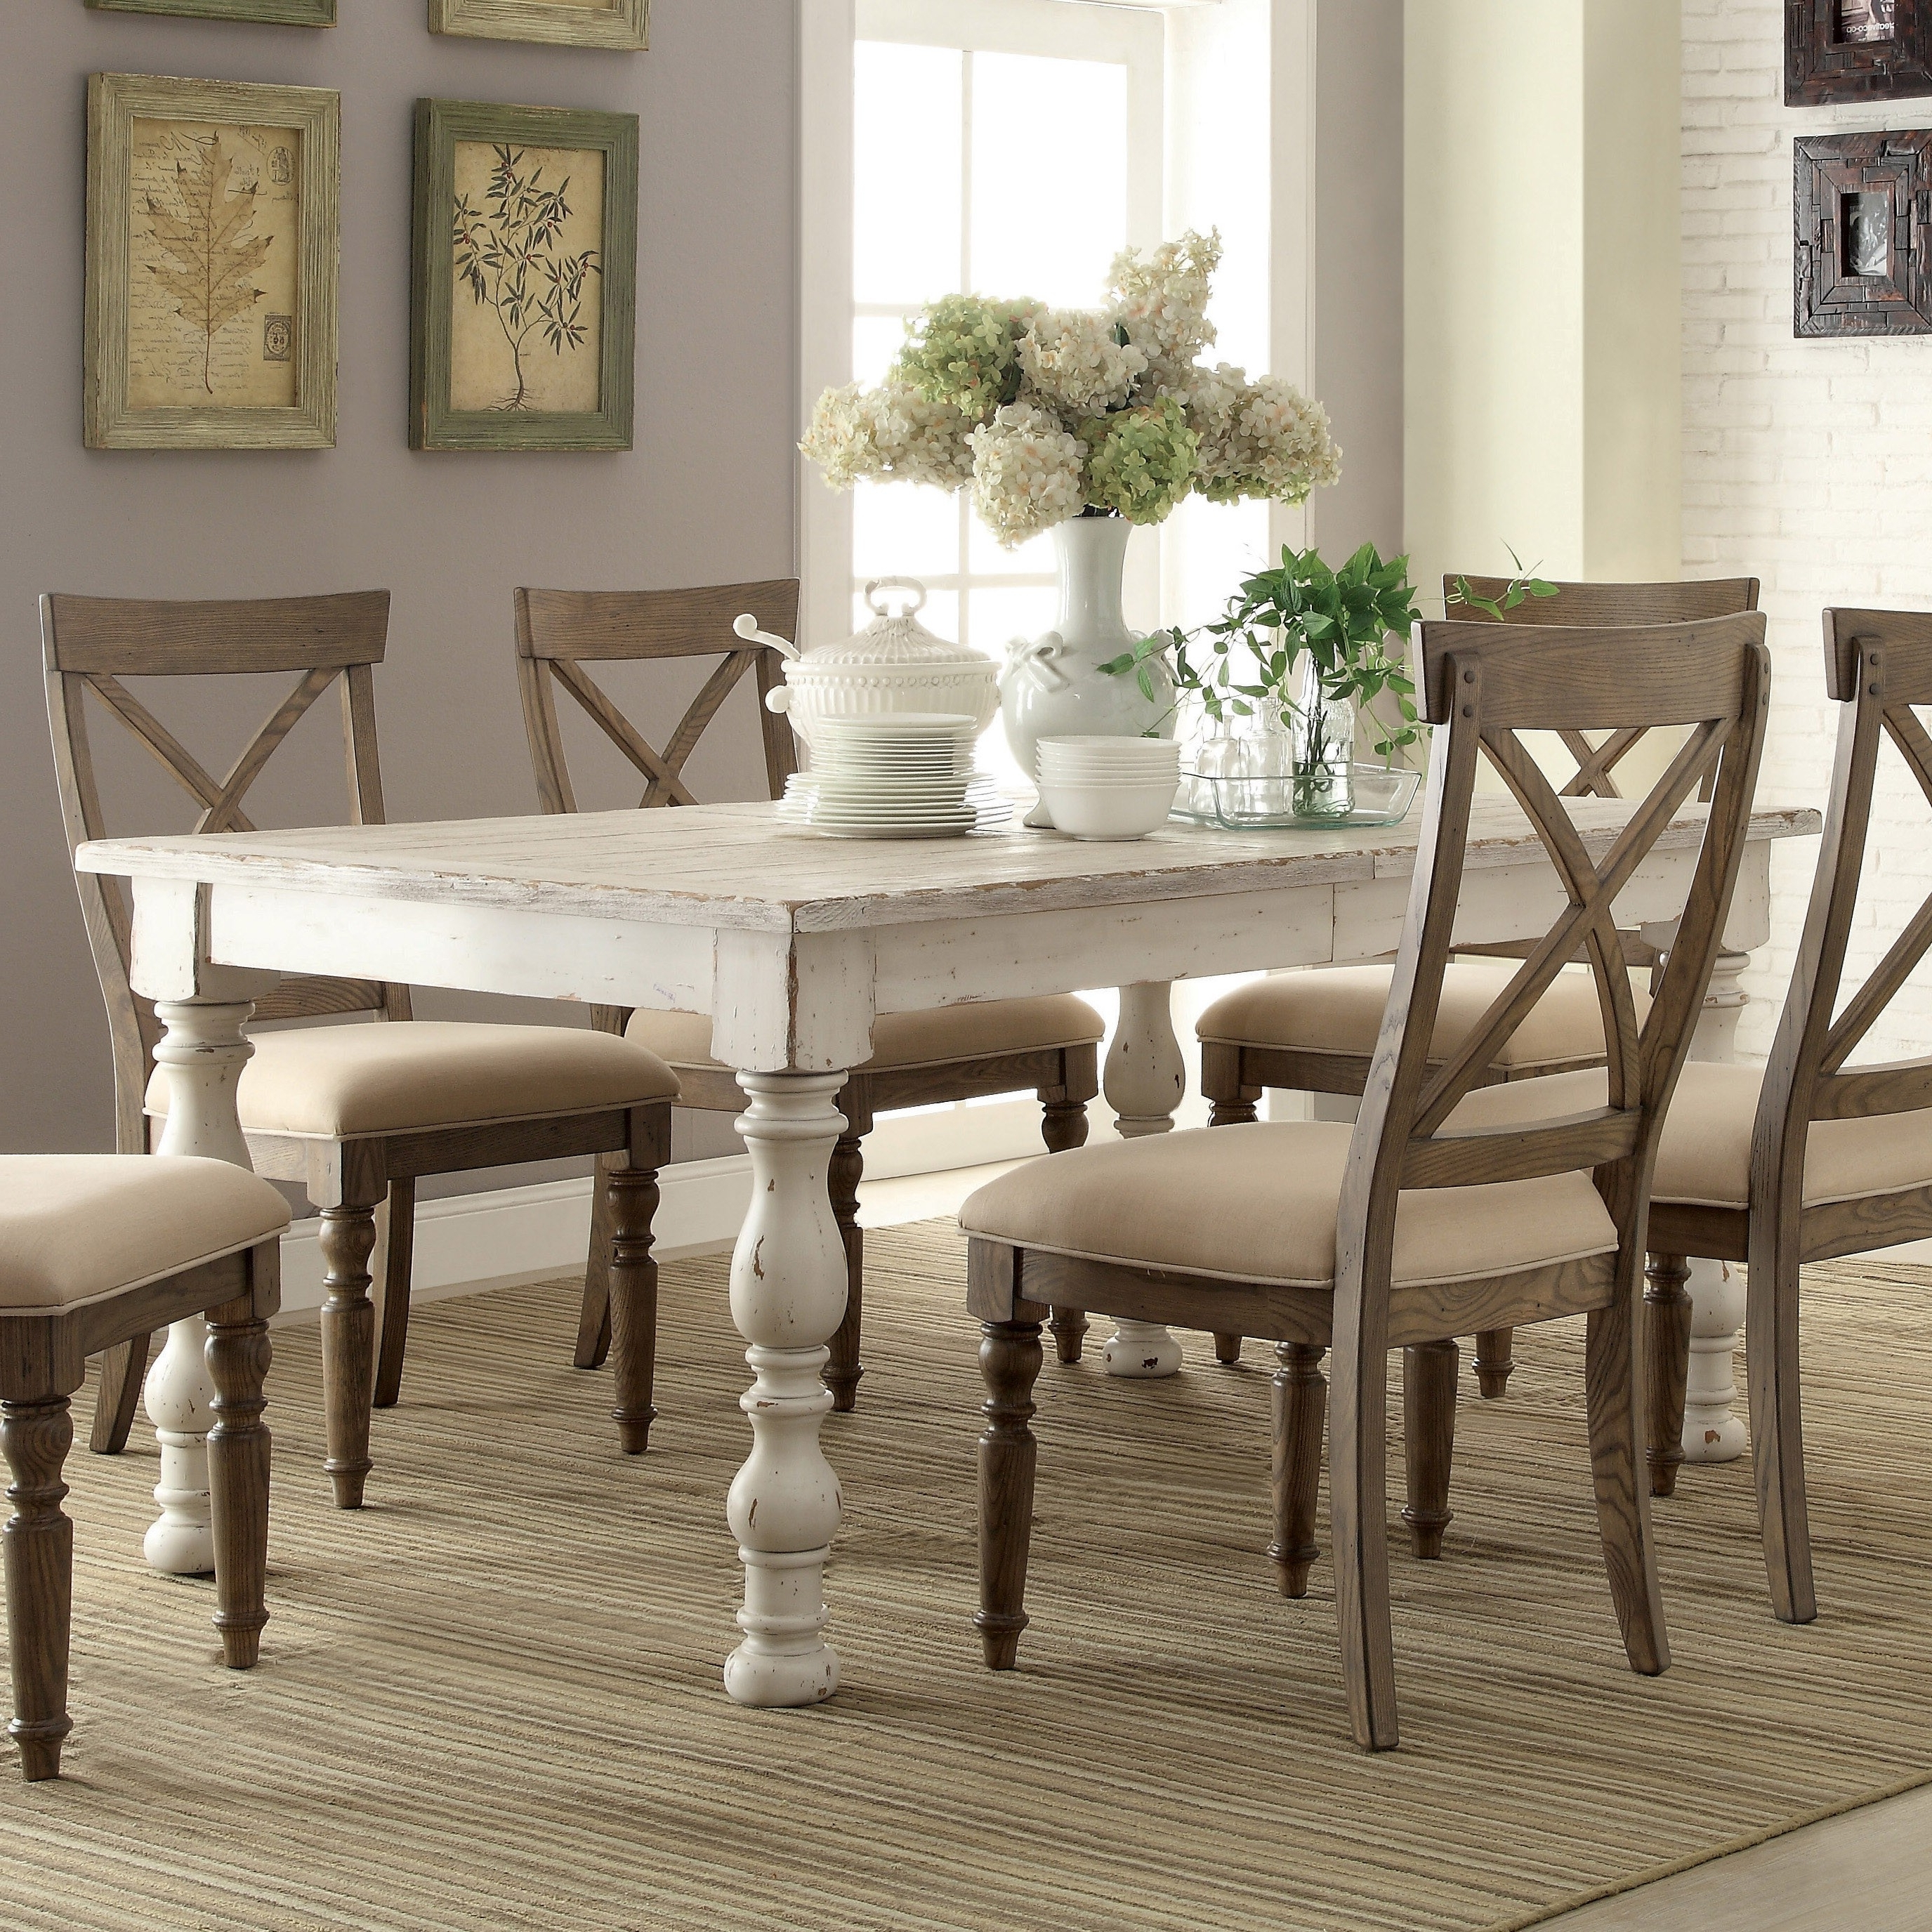 Dining Tables Grey Chairs Throughout Best And Newest Aberdeen Wood Rectangular Dining Table In Weathered Worn White (Gallery 12 of 25)